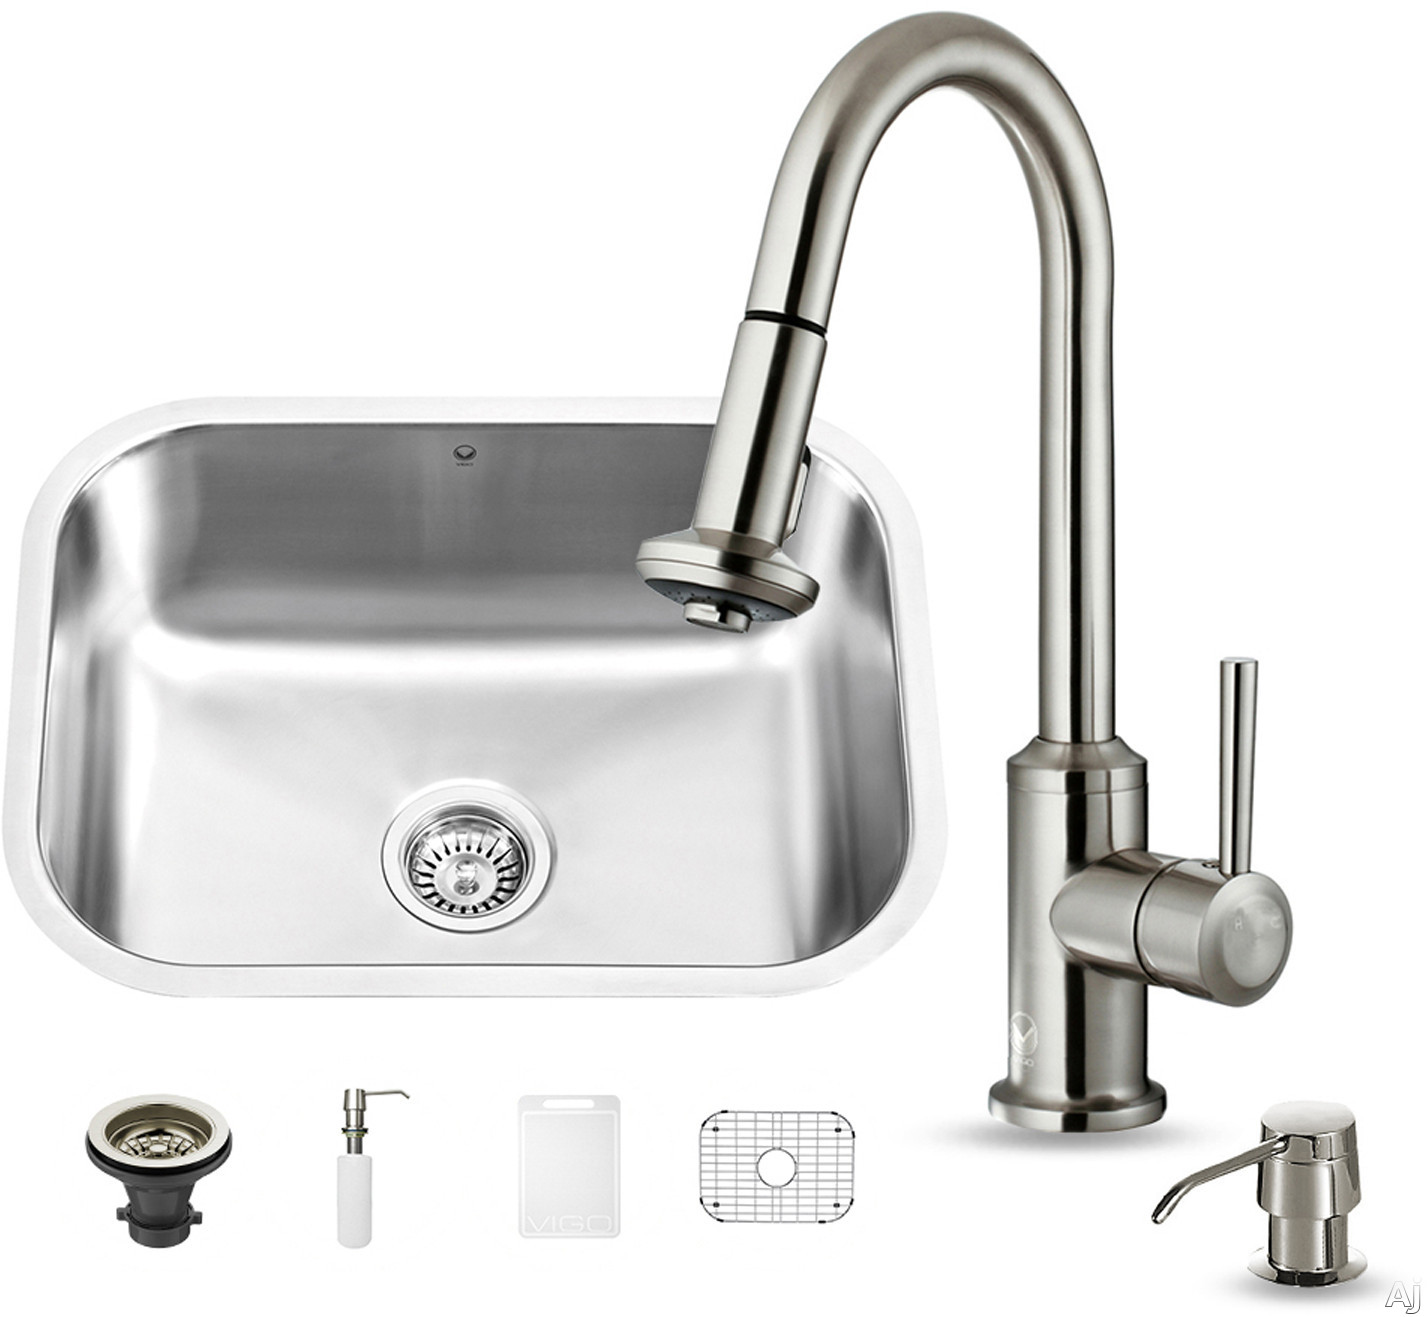 Vigo Industries VG15287 23 Inch All-in-One Undermount Kitchen Sink Set with 9 Inch Basin Depth, 18-Gauge, Stainless Steel Pull-Out Faucet, Bottom Grid and Soap Dispenser